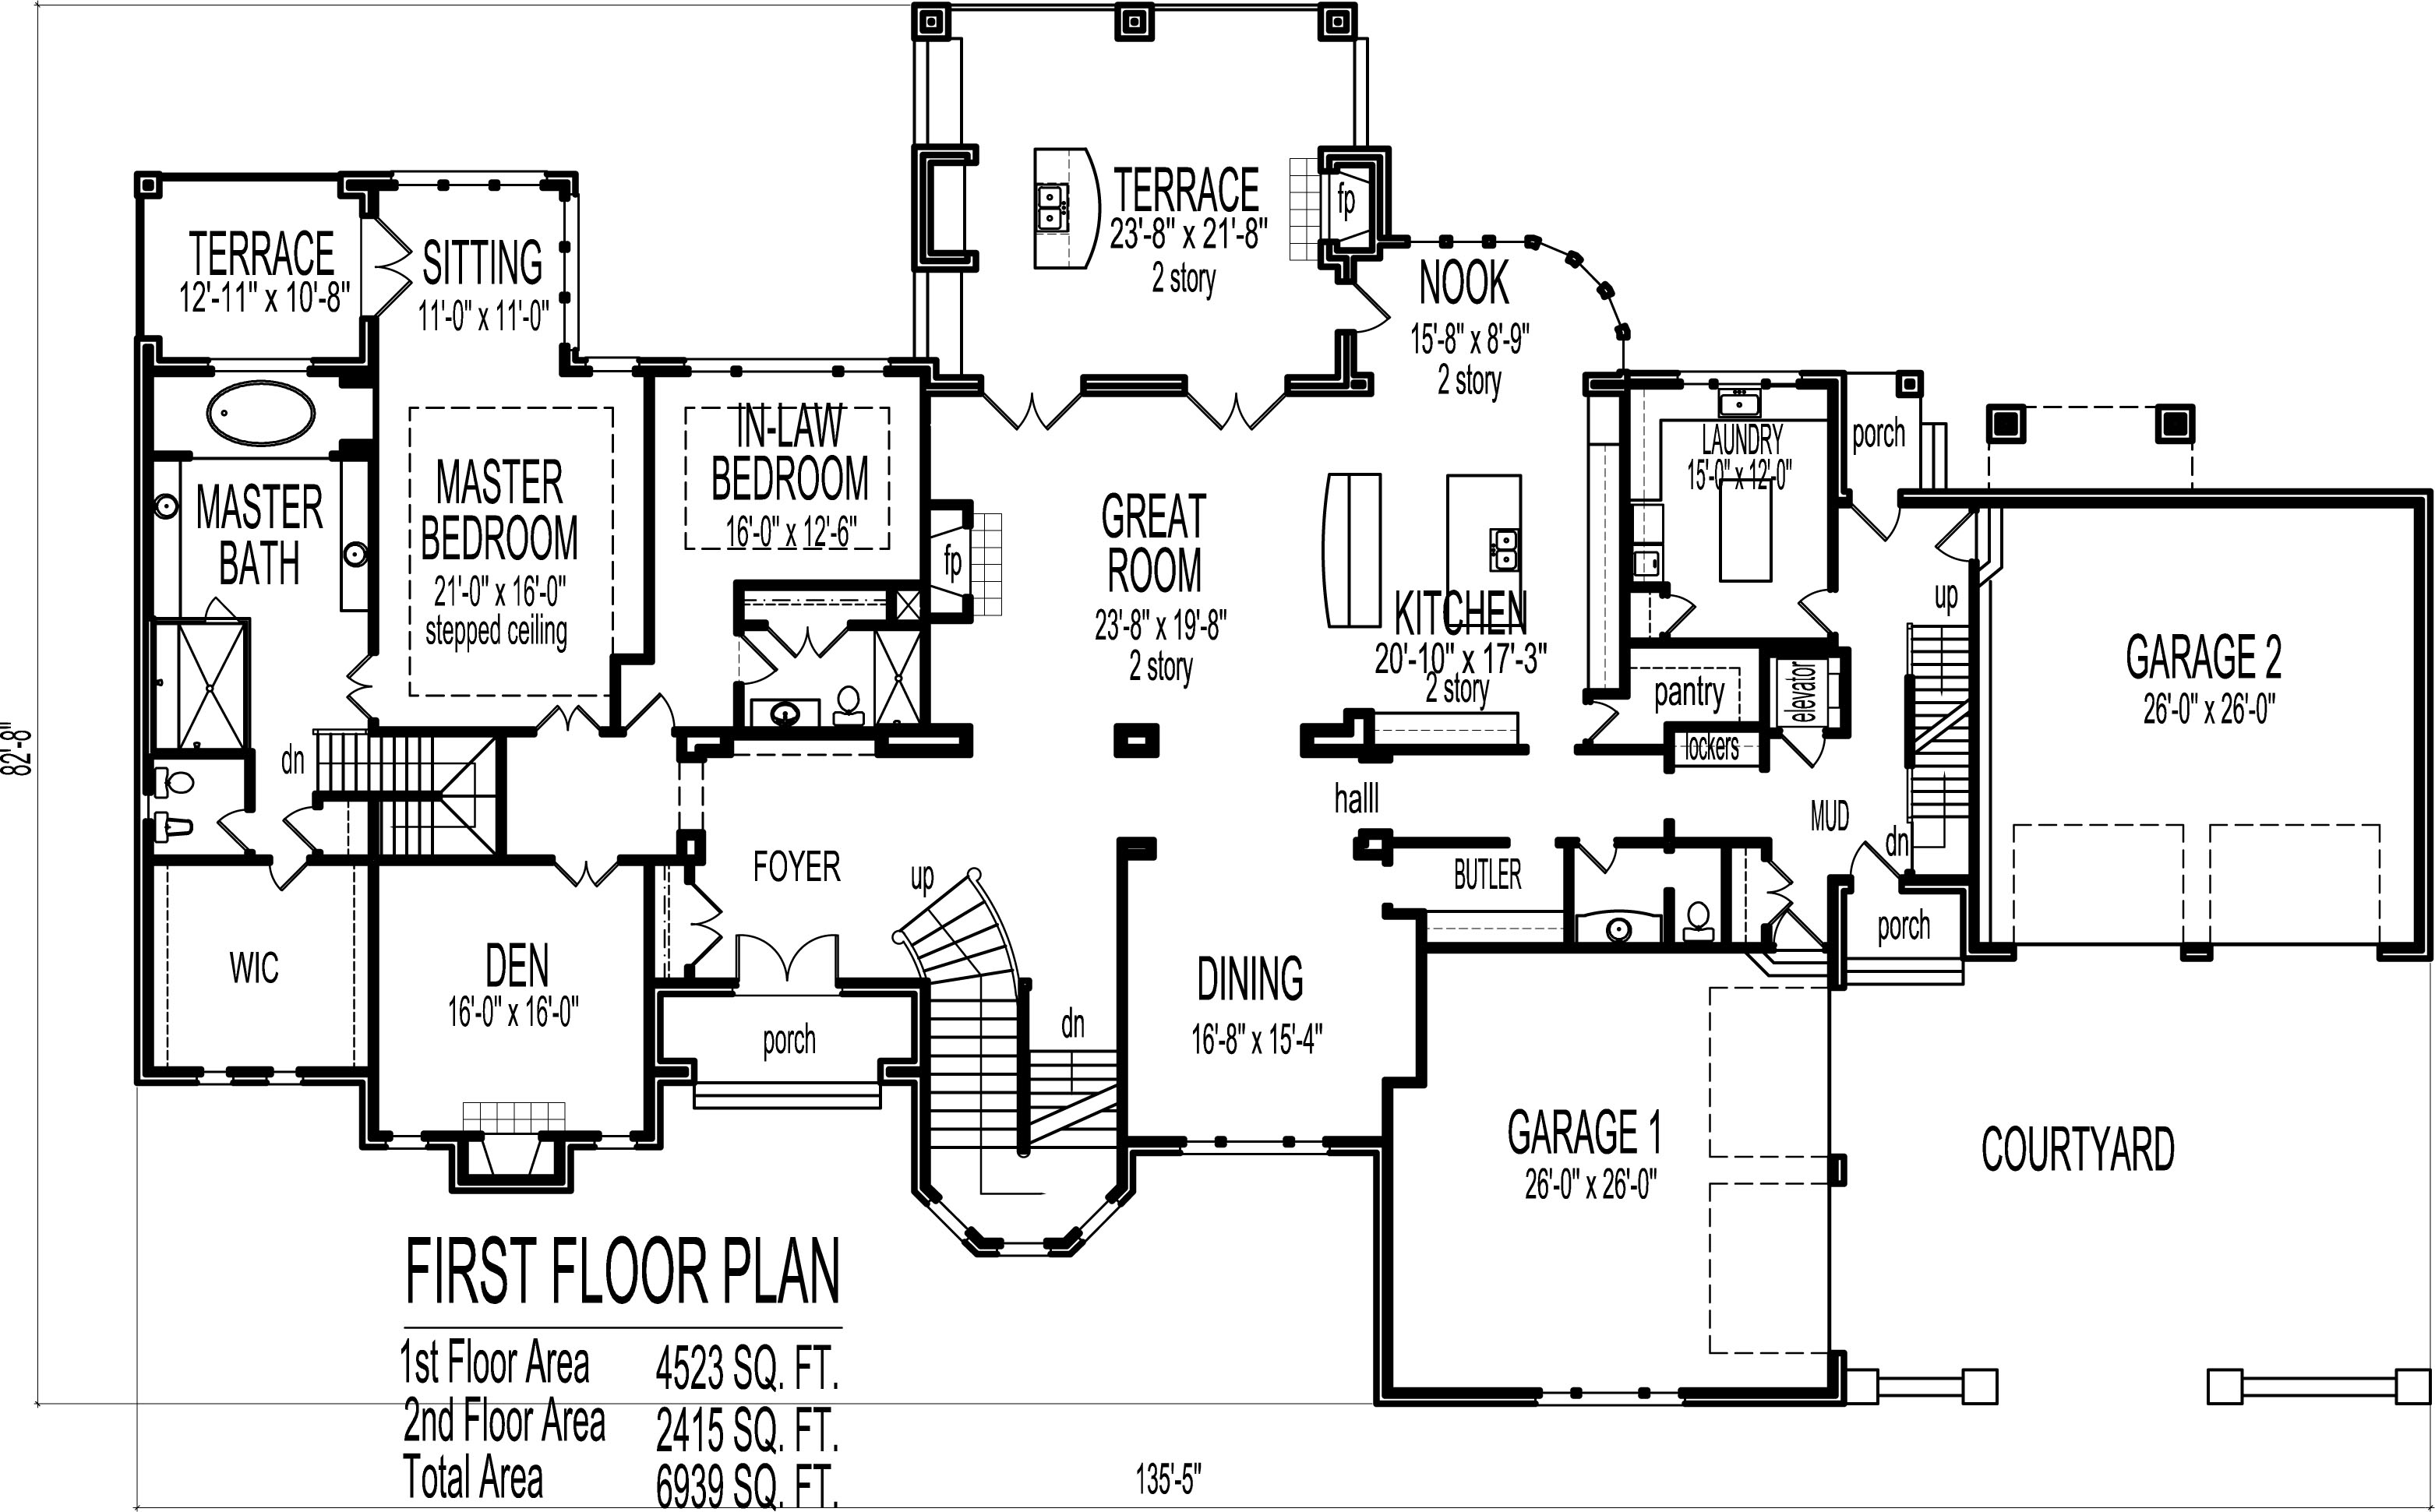 Mansion house floor plans blueprints 6 bedroom 2 story for Blueprint designs for houses